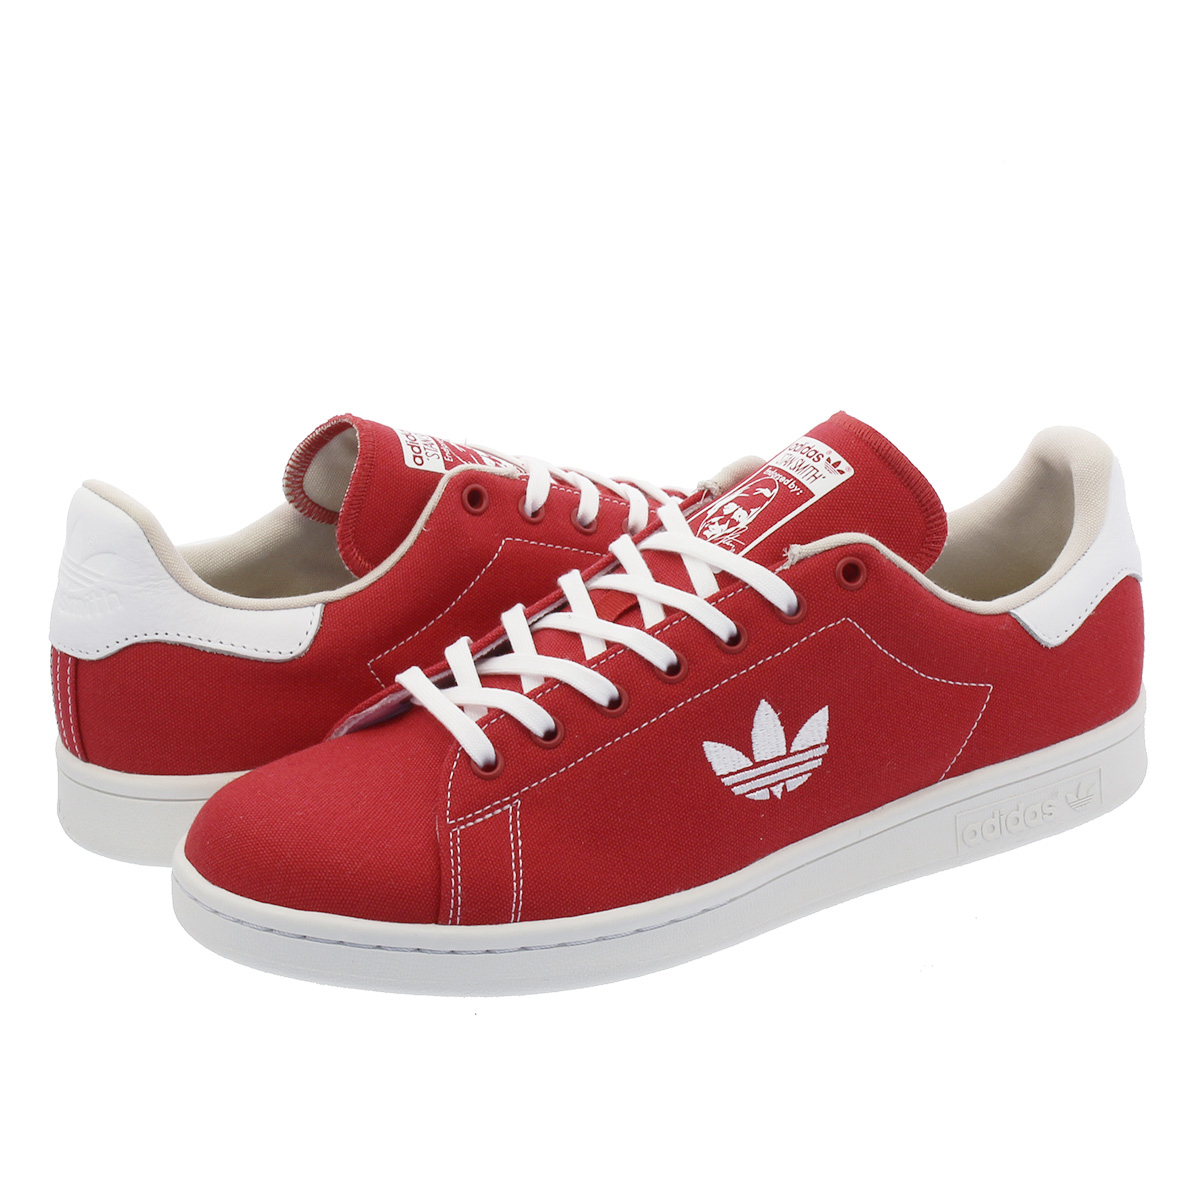 adidas STAN SMITH Adidas Stan Smith SCARLET/RUNNING WHITE/CLEAR BROWN b37894